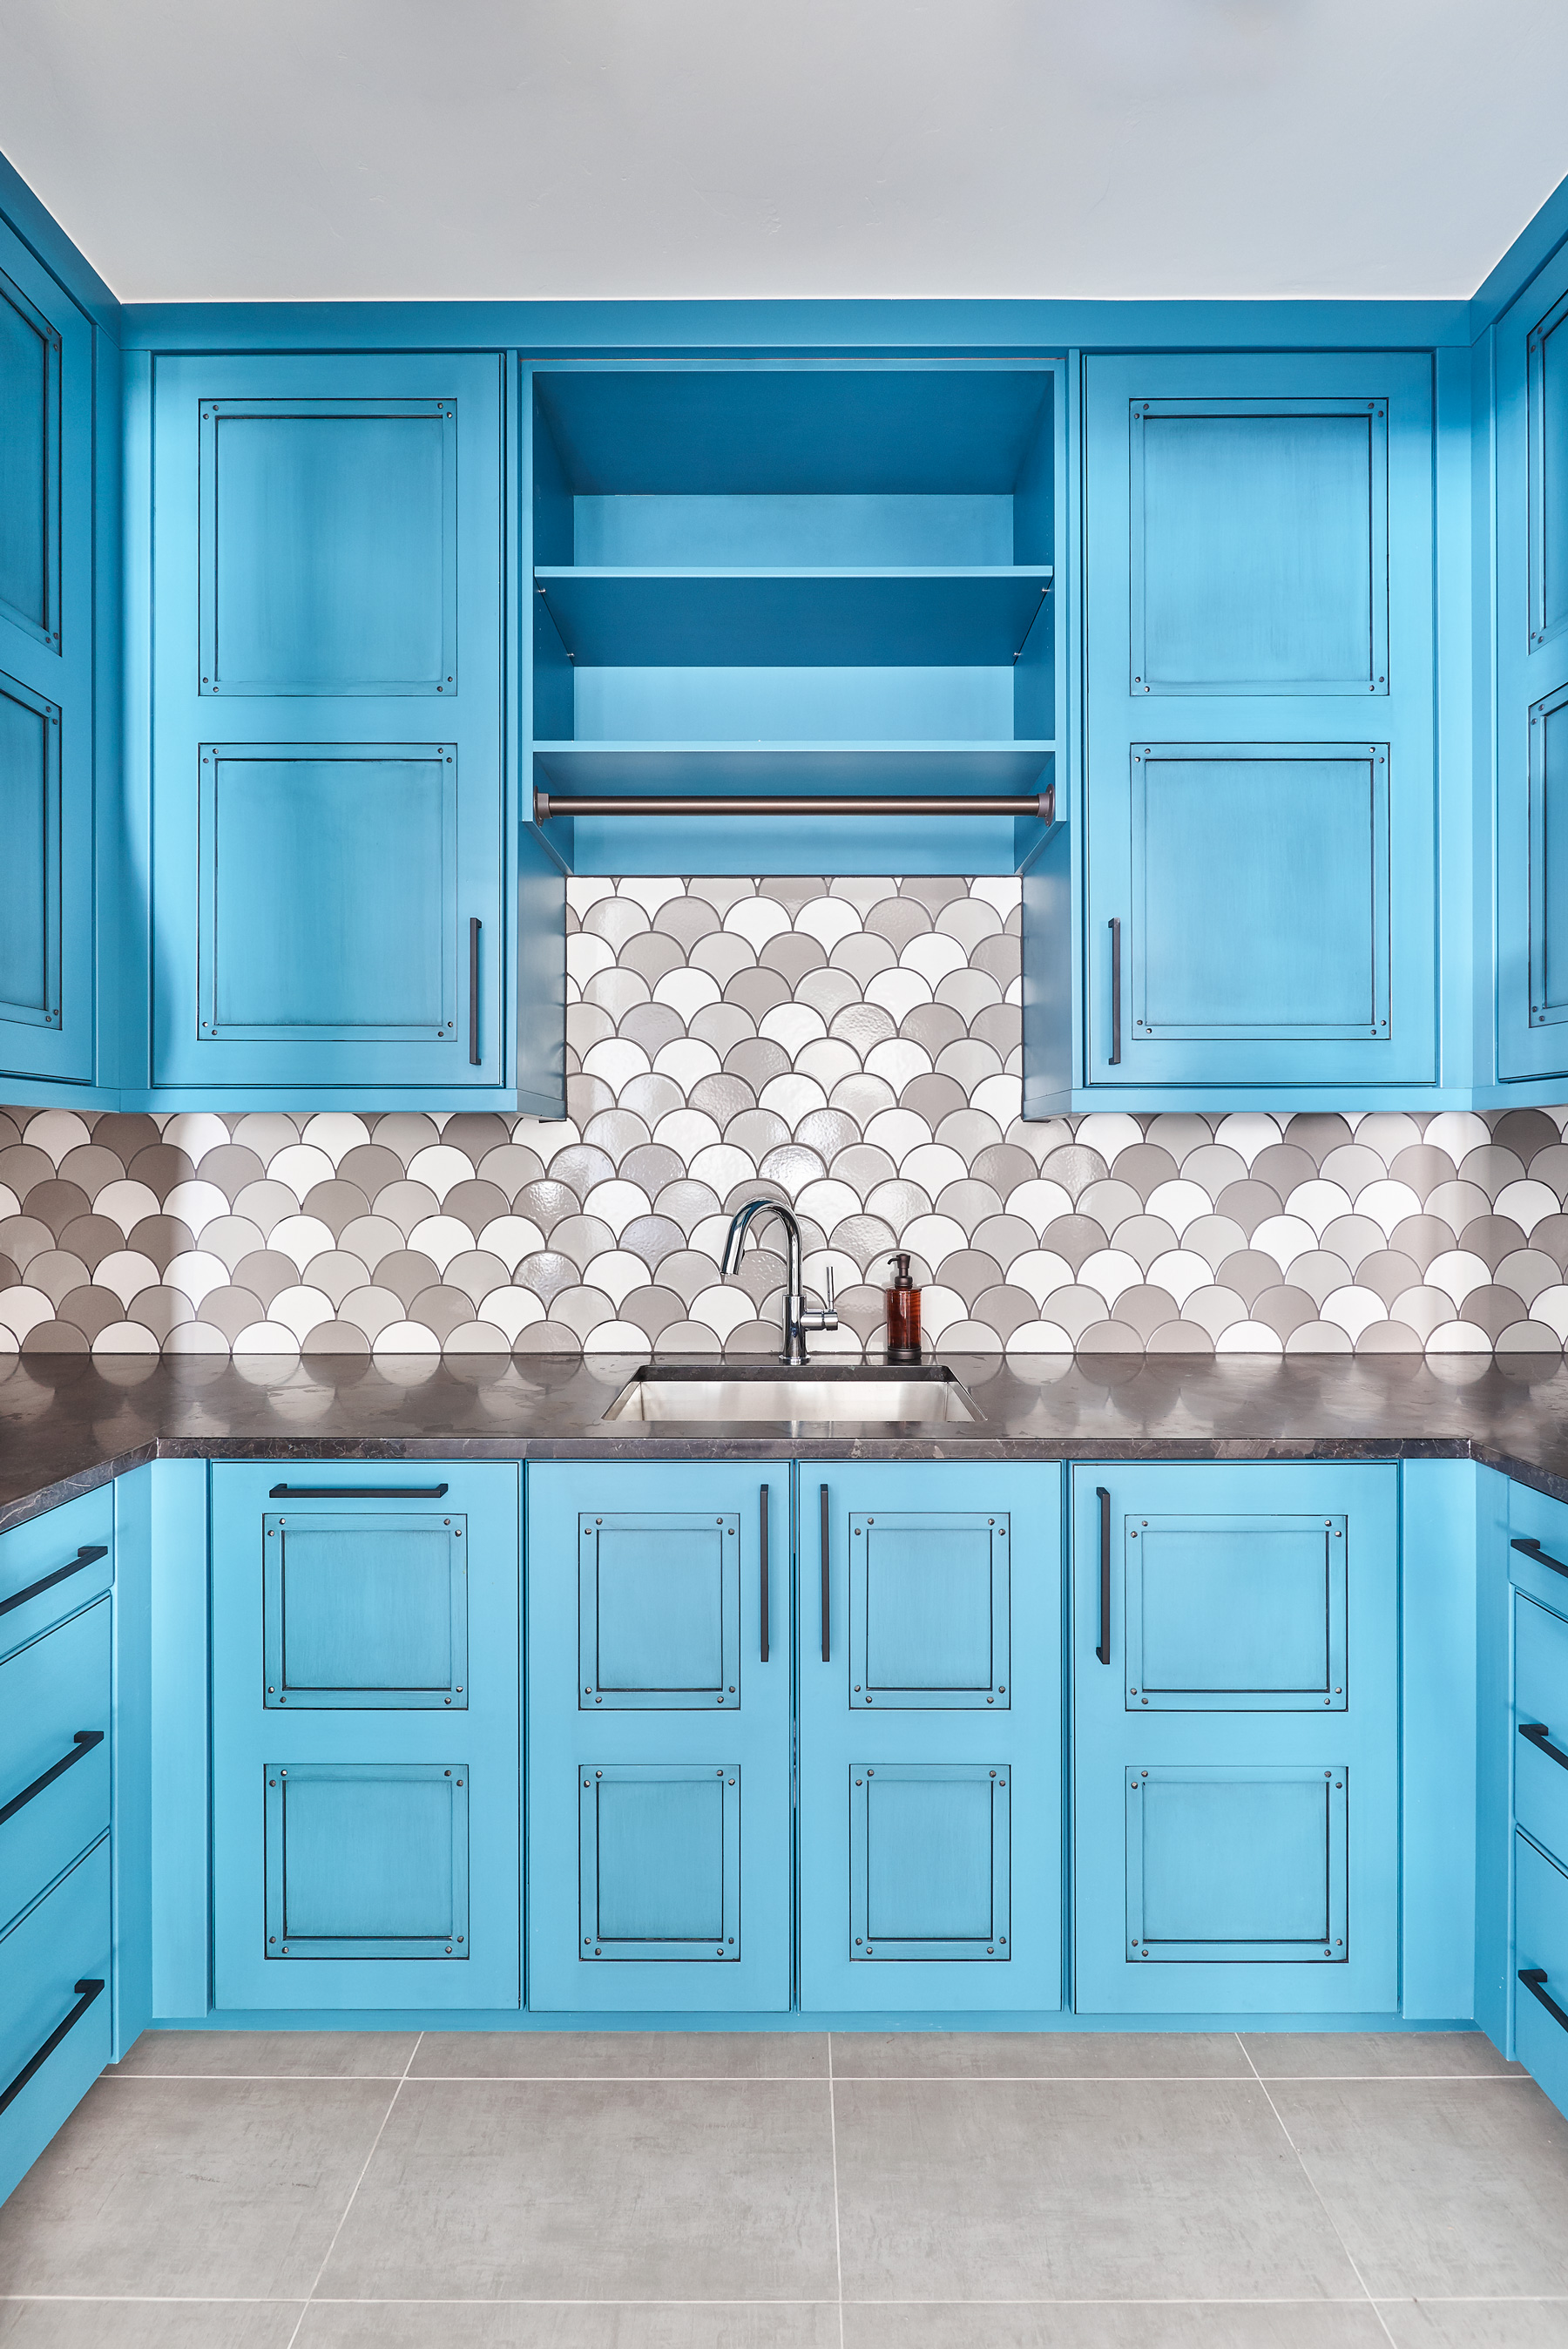 Laundry room blue cabinet interior design.jpg